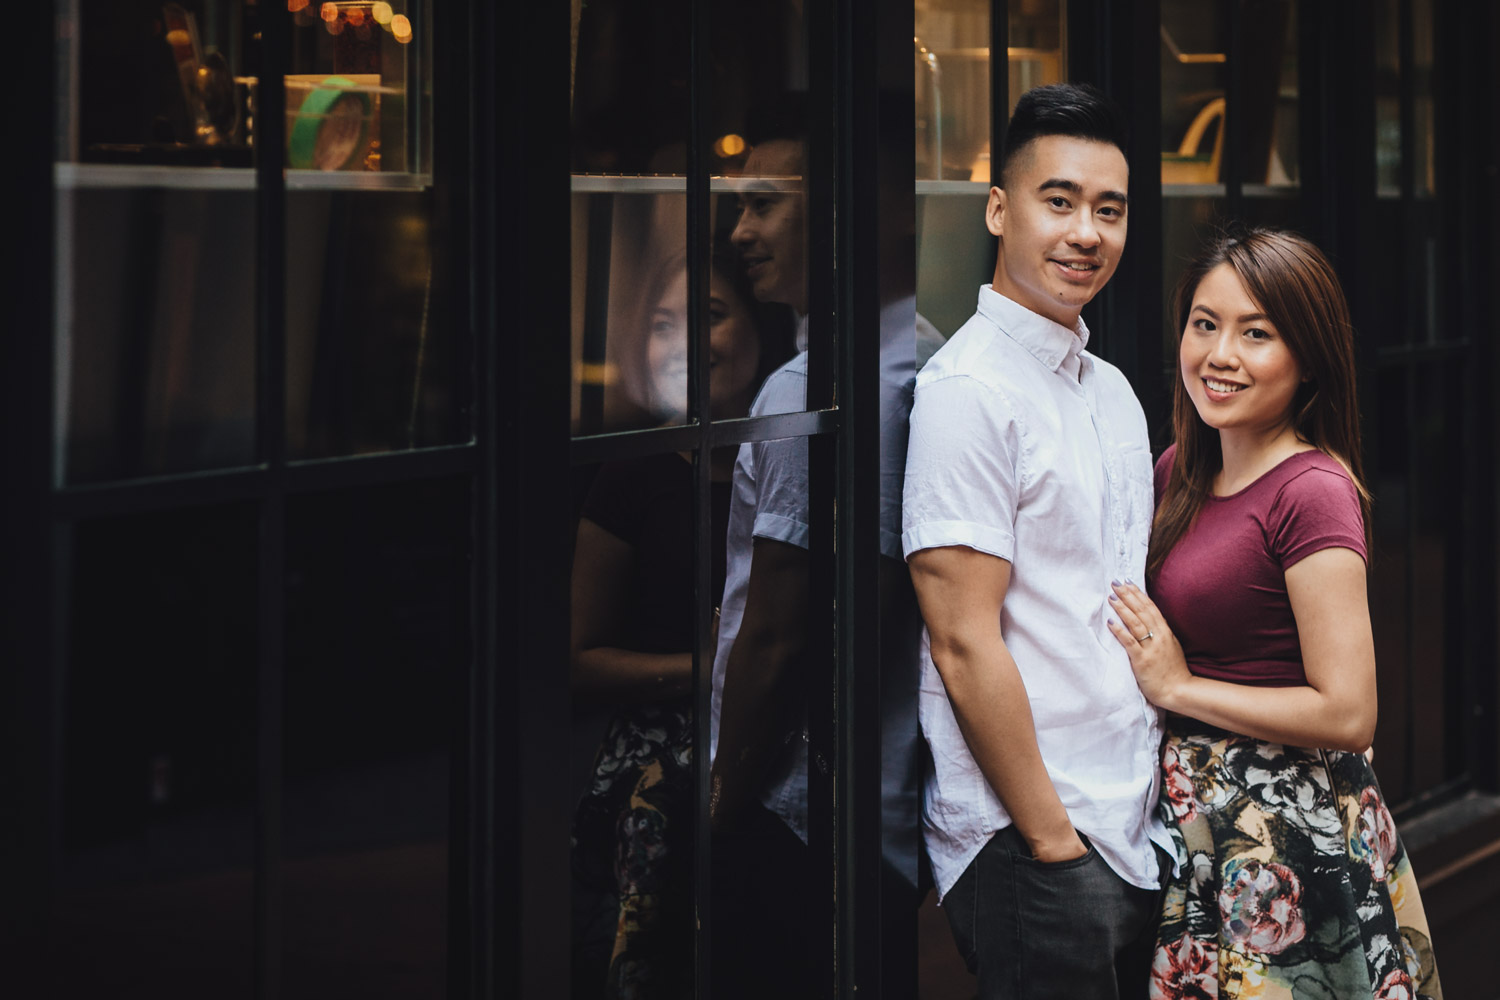 gastown engagement photography in vancouver bc during summer